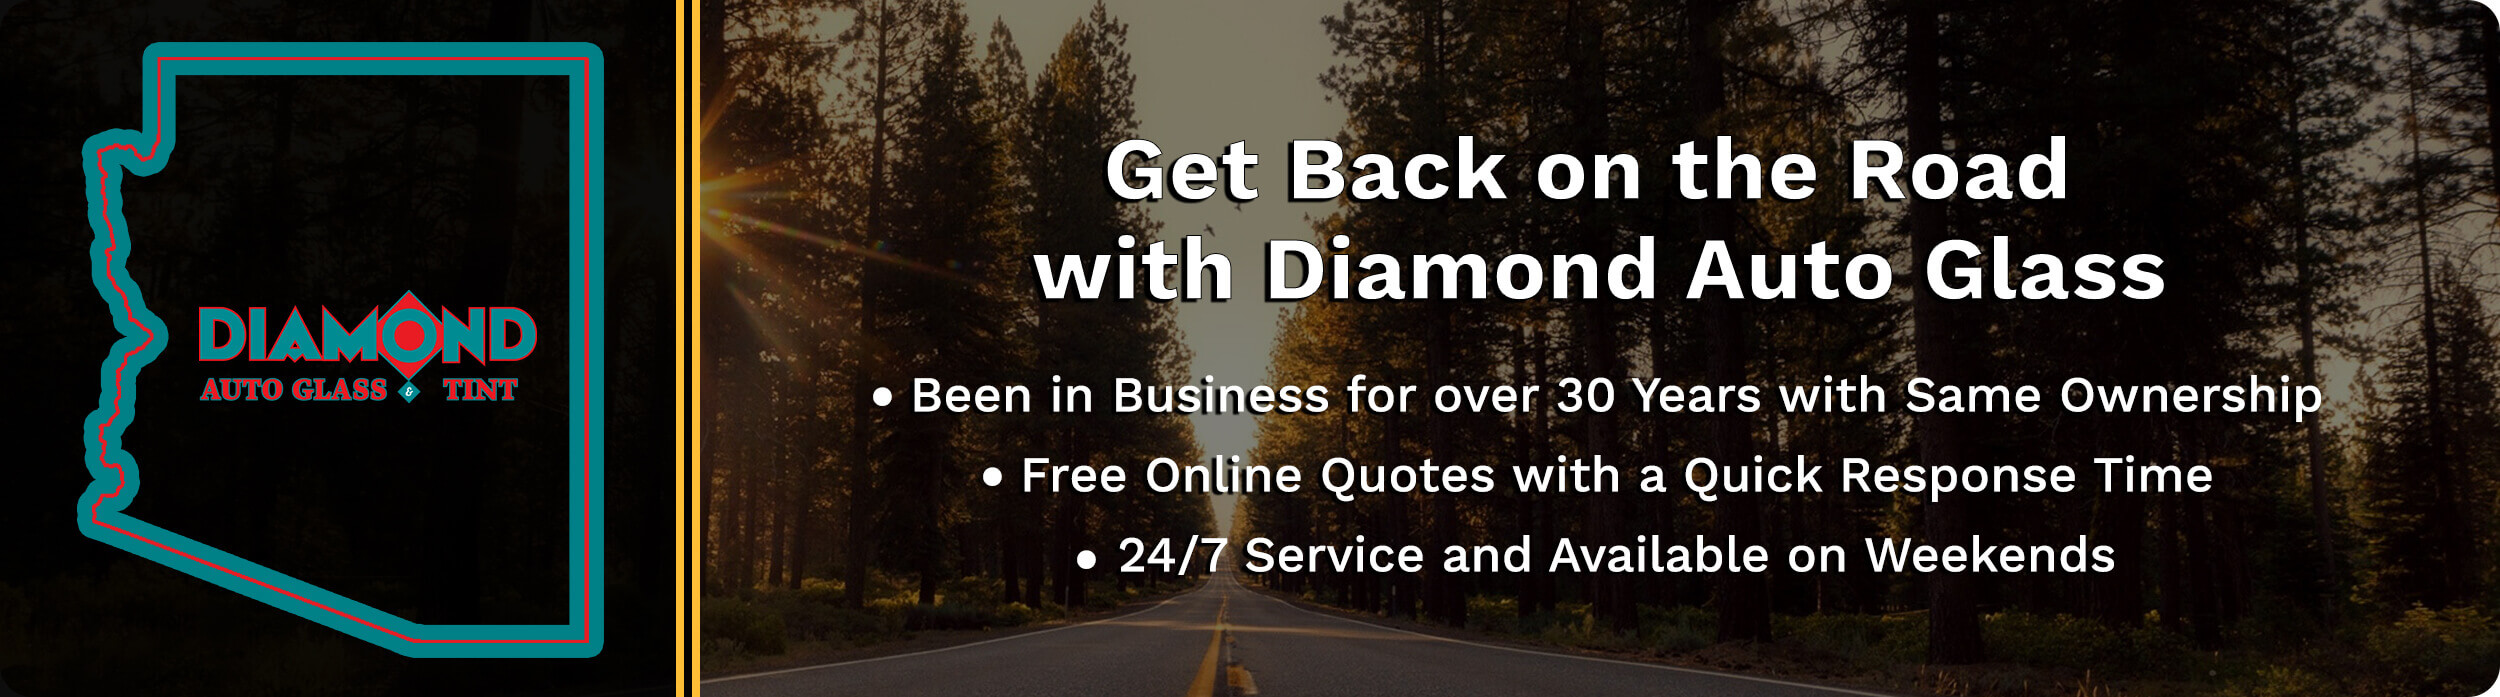 Diamond Auto Glass Flagstaff Arizona